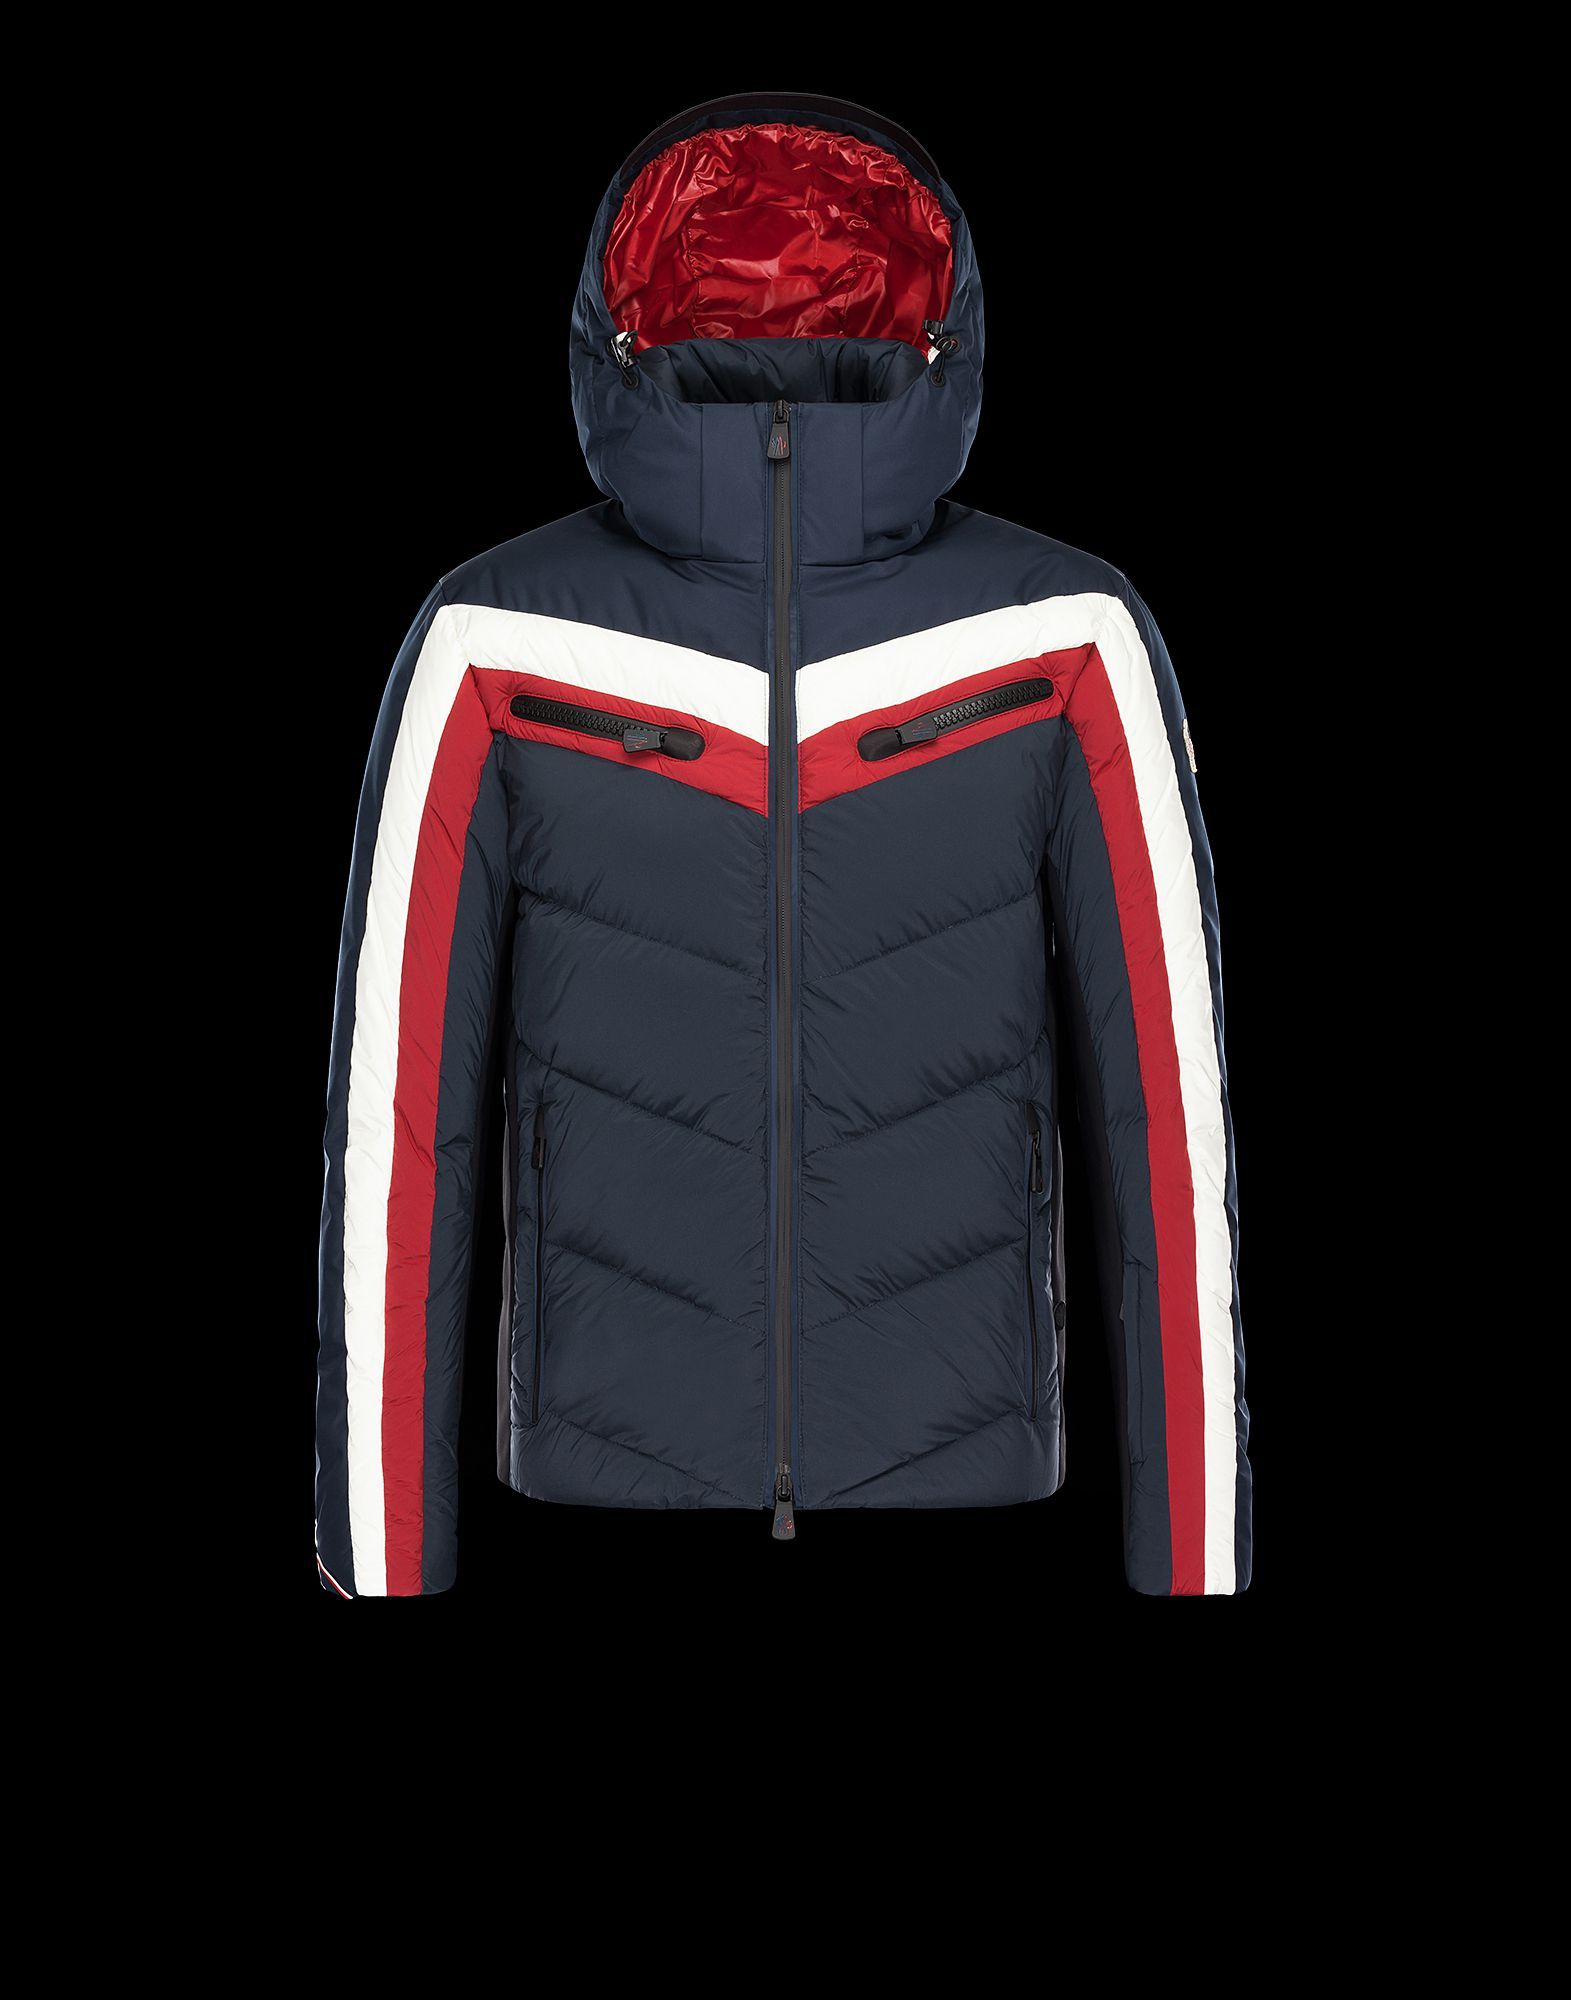 Men About Out In This Find Model Outerwear; By Discover Moncler qXxzwSxg